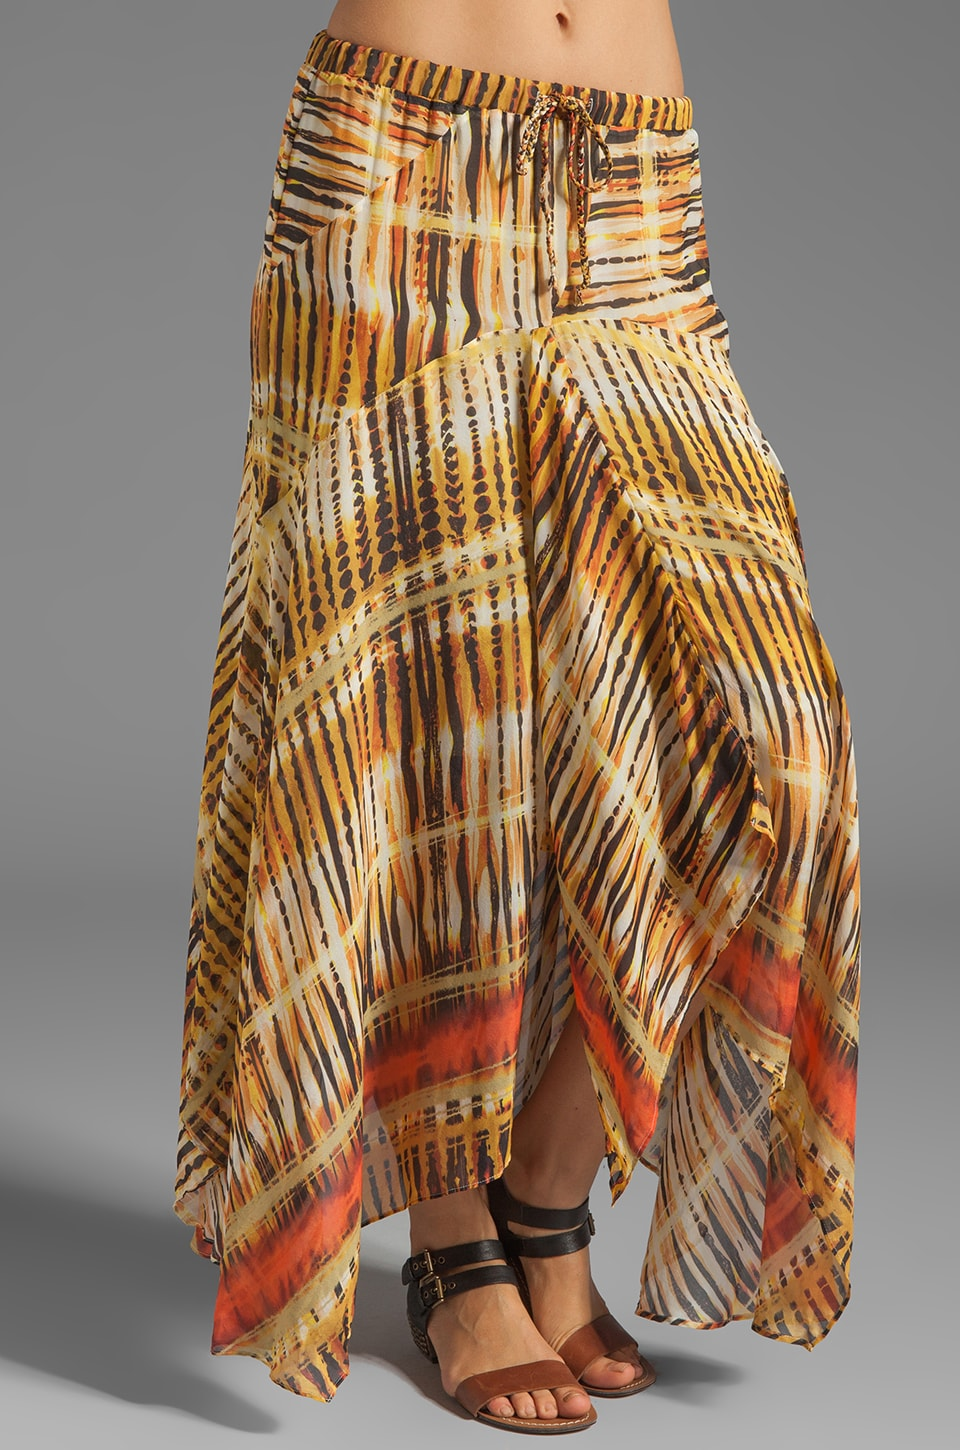 Da-Nang Patchwork Skirt in Masai